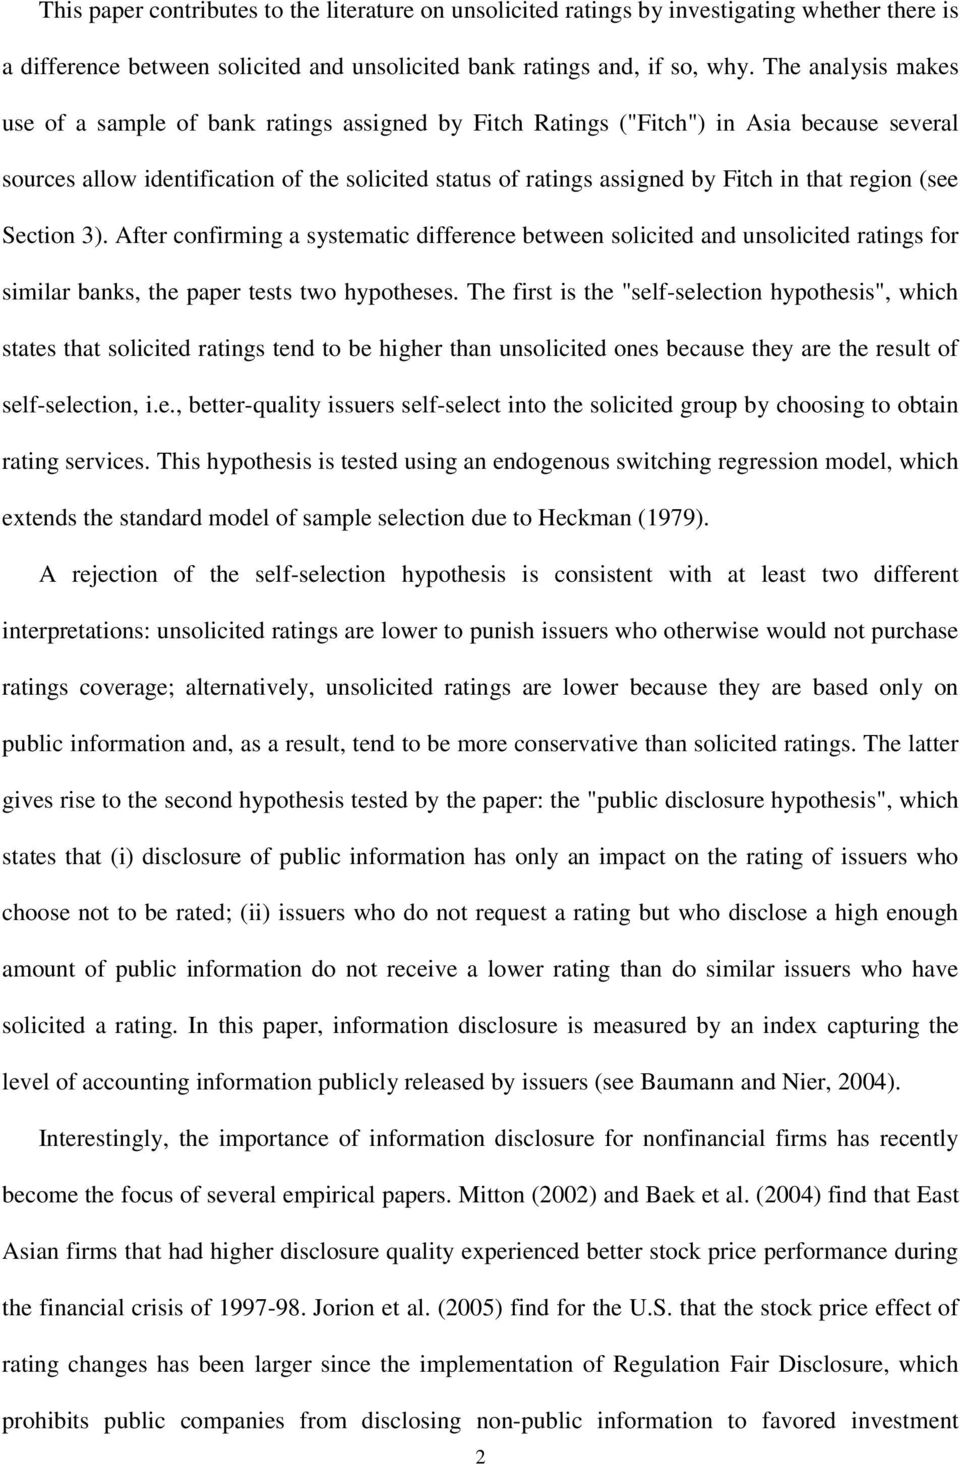 that region (see Section 3). After confirming a systematic difference between solicited and unsolicited ratings for similar banks, the paper tests two hypotheses.